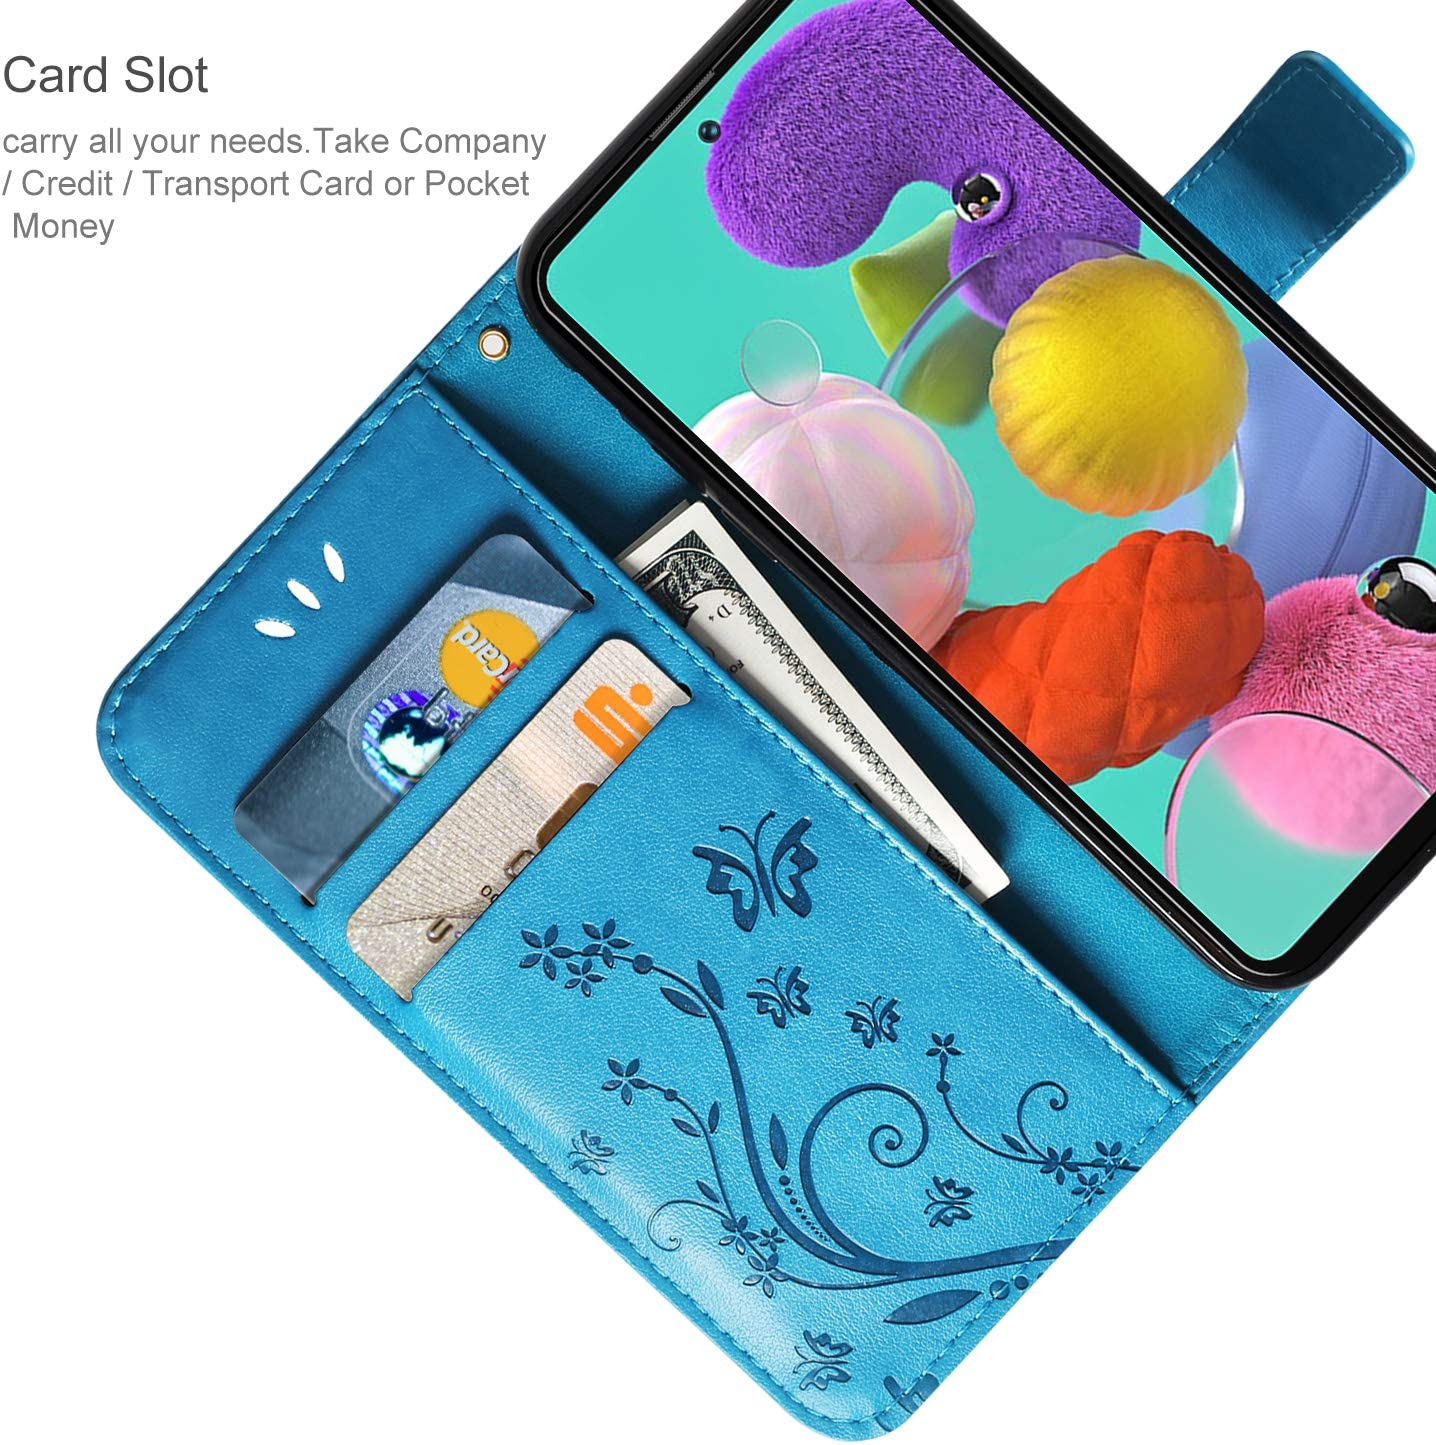 AROYI Huawei P Smart 2020 Case Huawei P Smart 2020 Wallet Case PU Leather Wallet with Card Slots Stand Magnetic Clasp Scratchproof Bookstyle Case for Huawei P Smart 2020 Blue